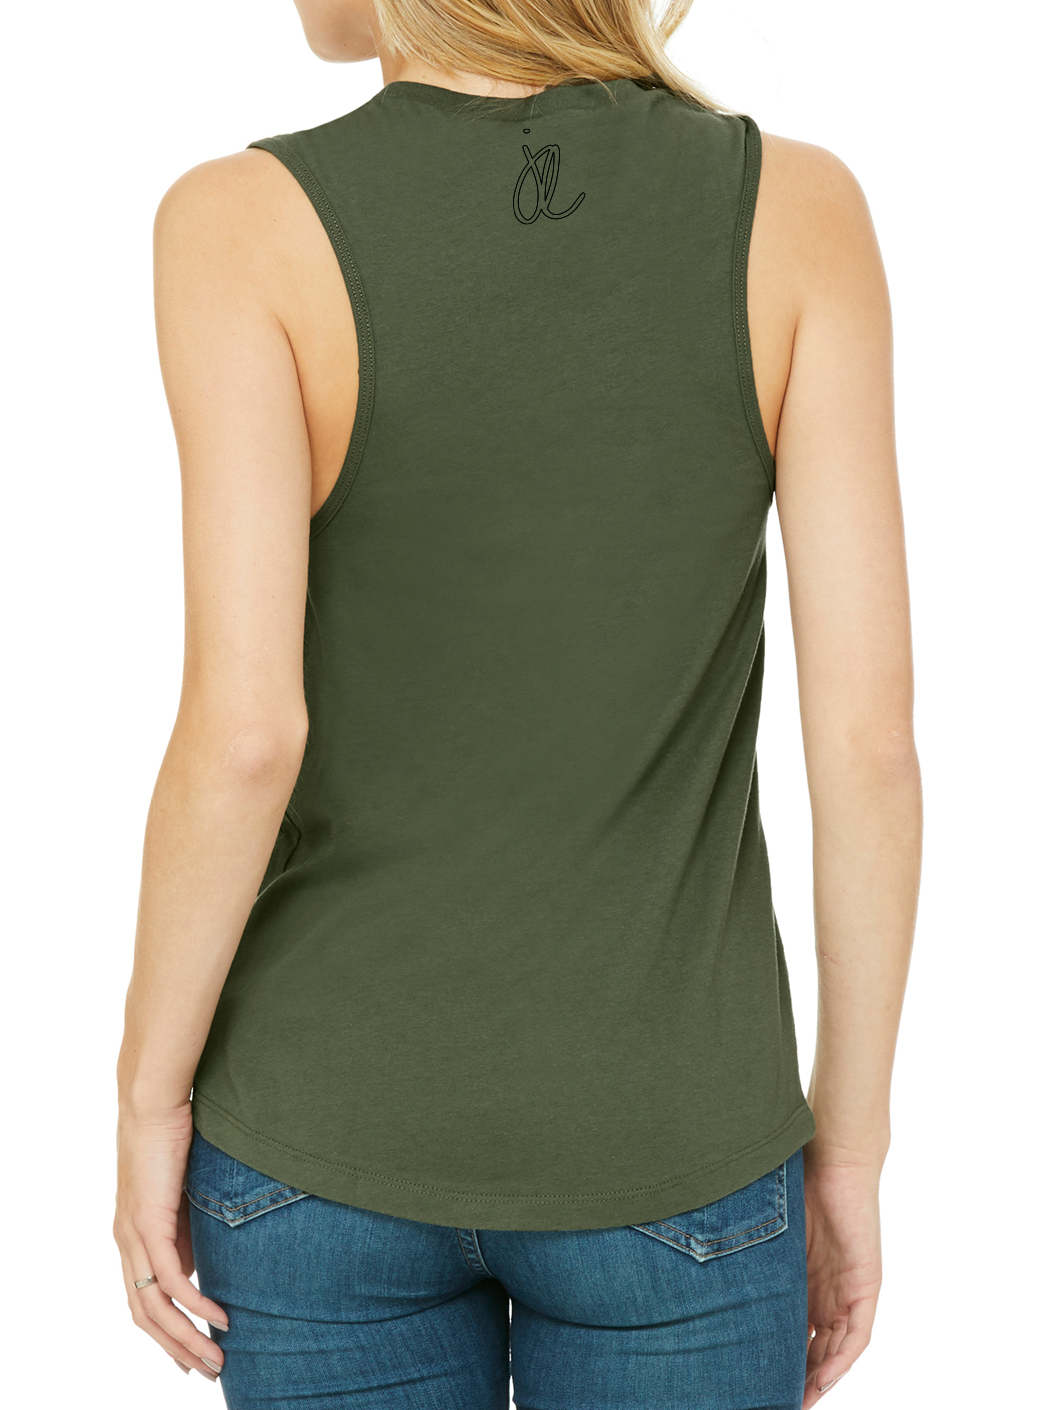 LABELS Women's Jersey Muscle Tank